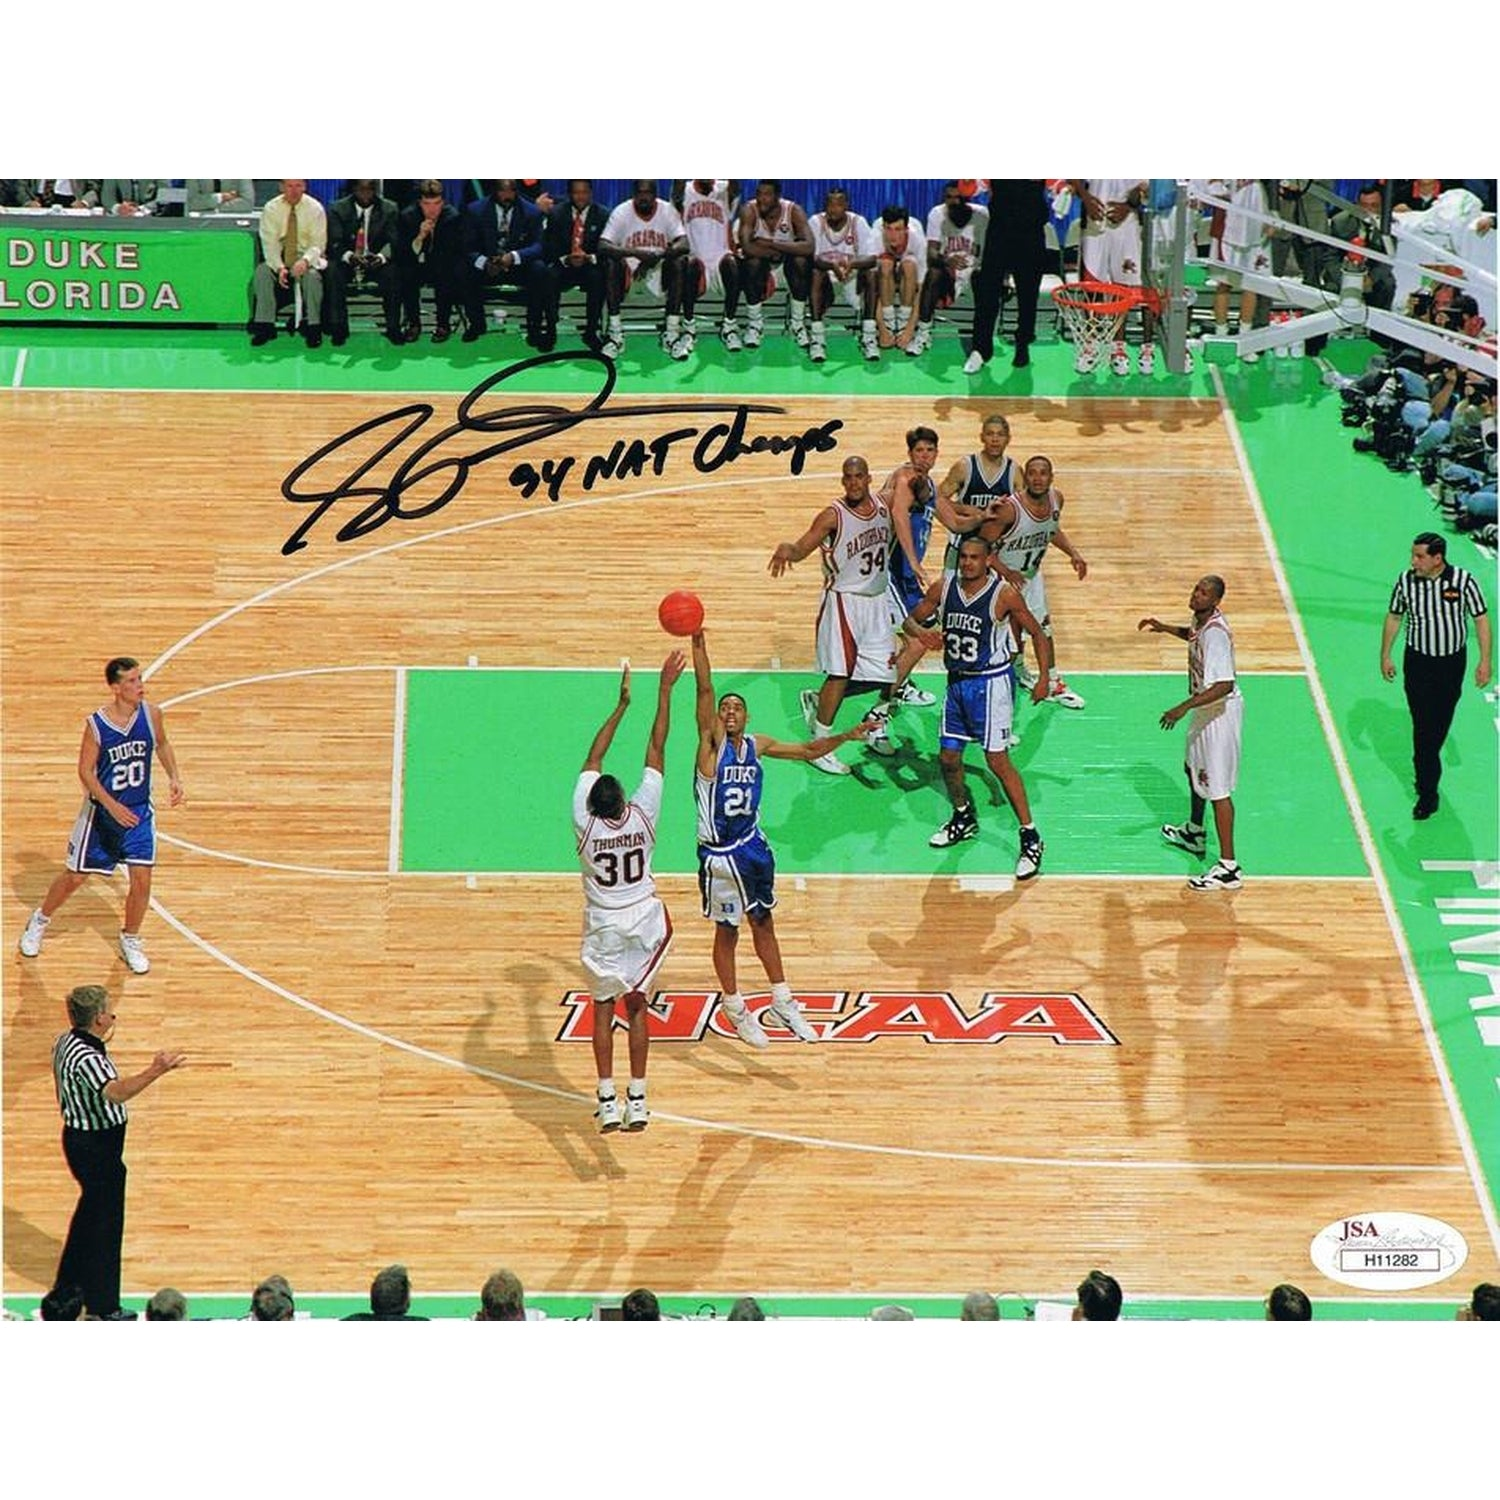 Signed Basketball Photos